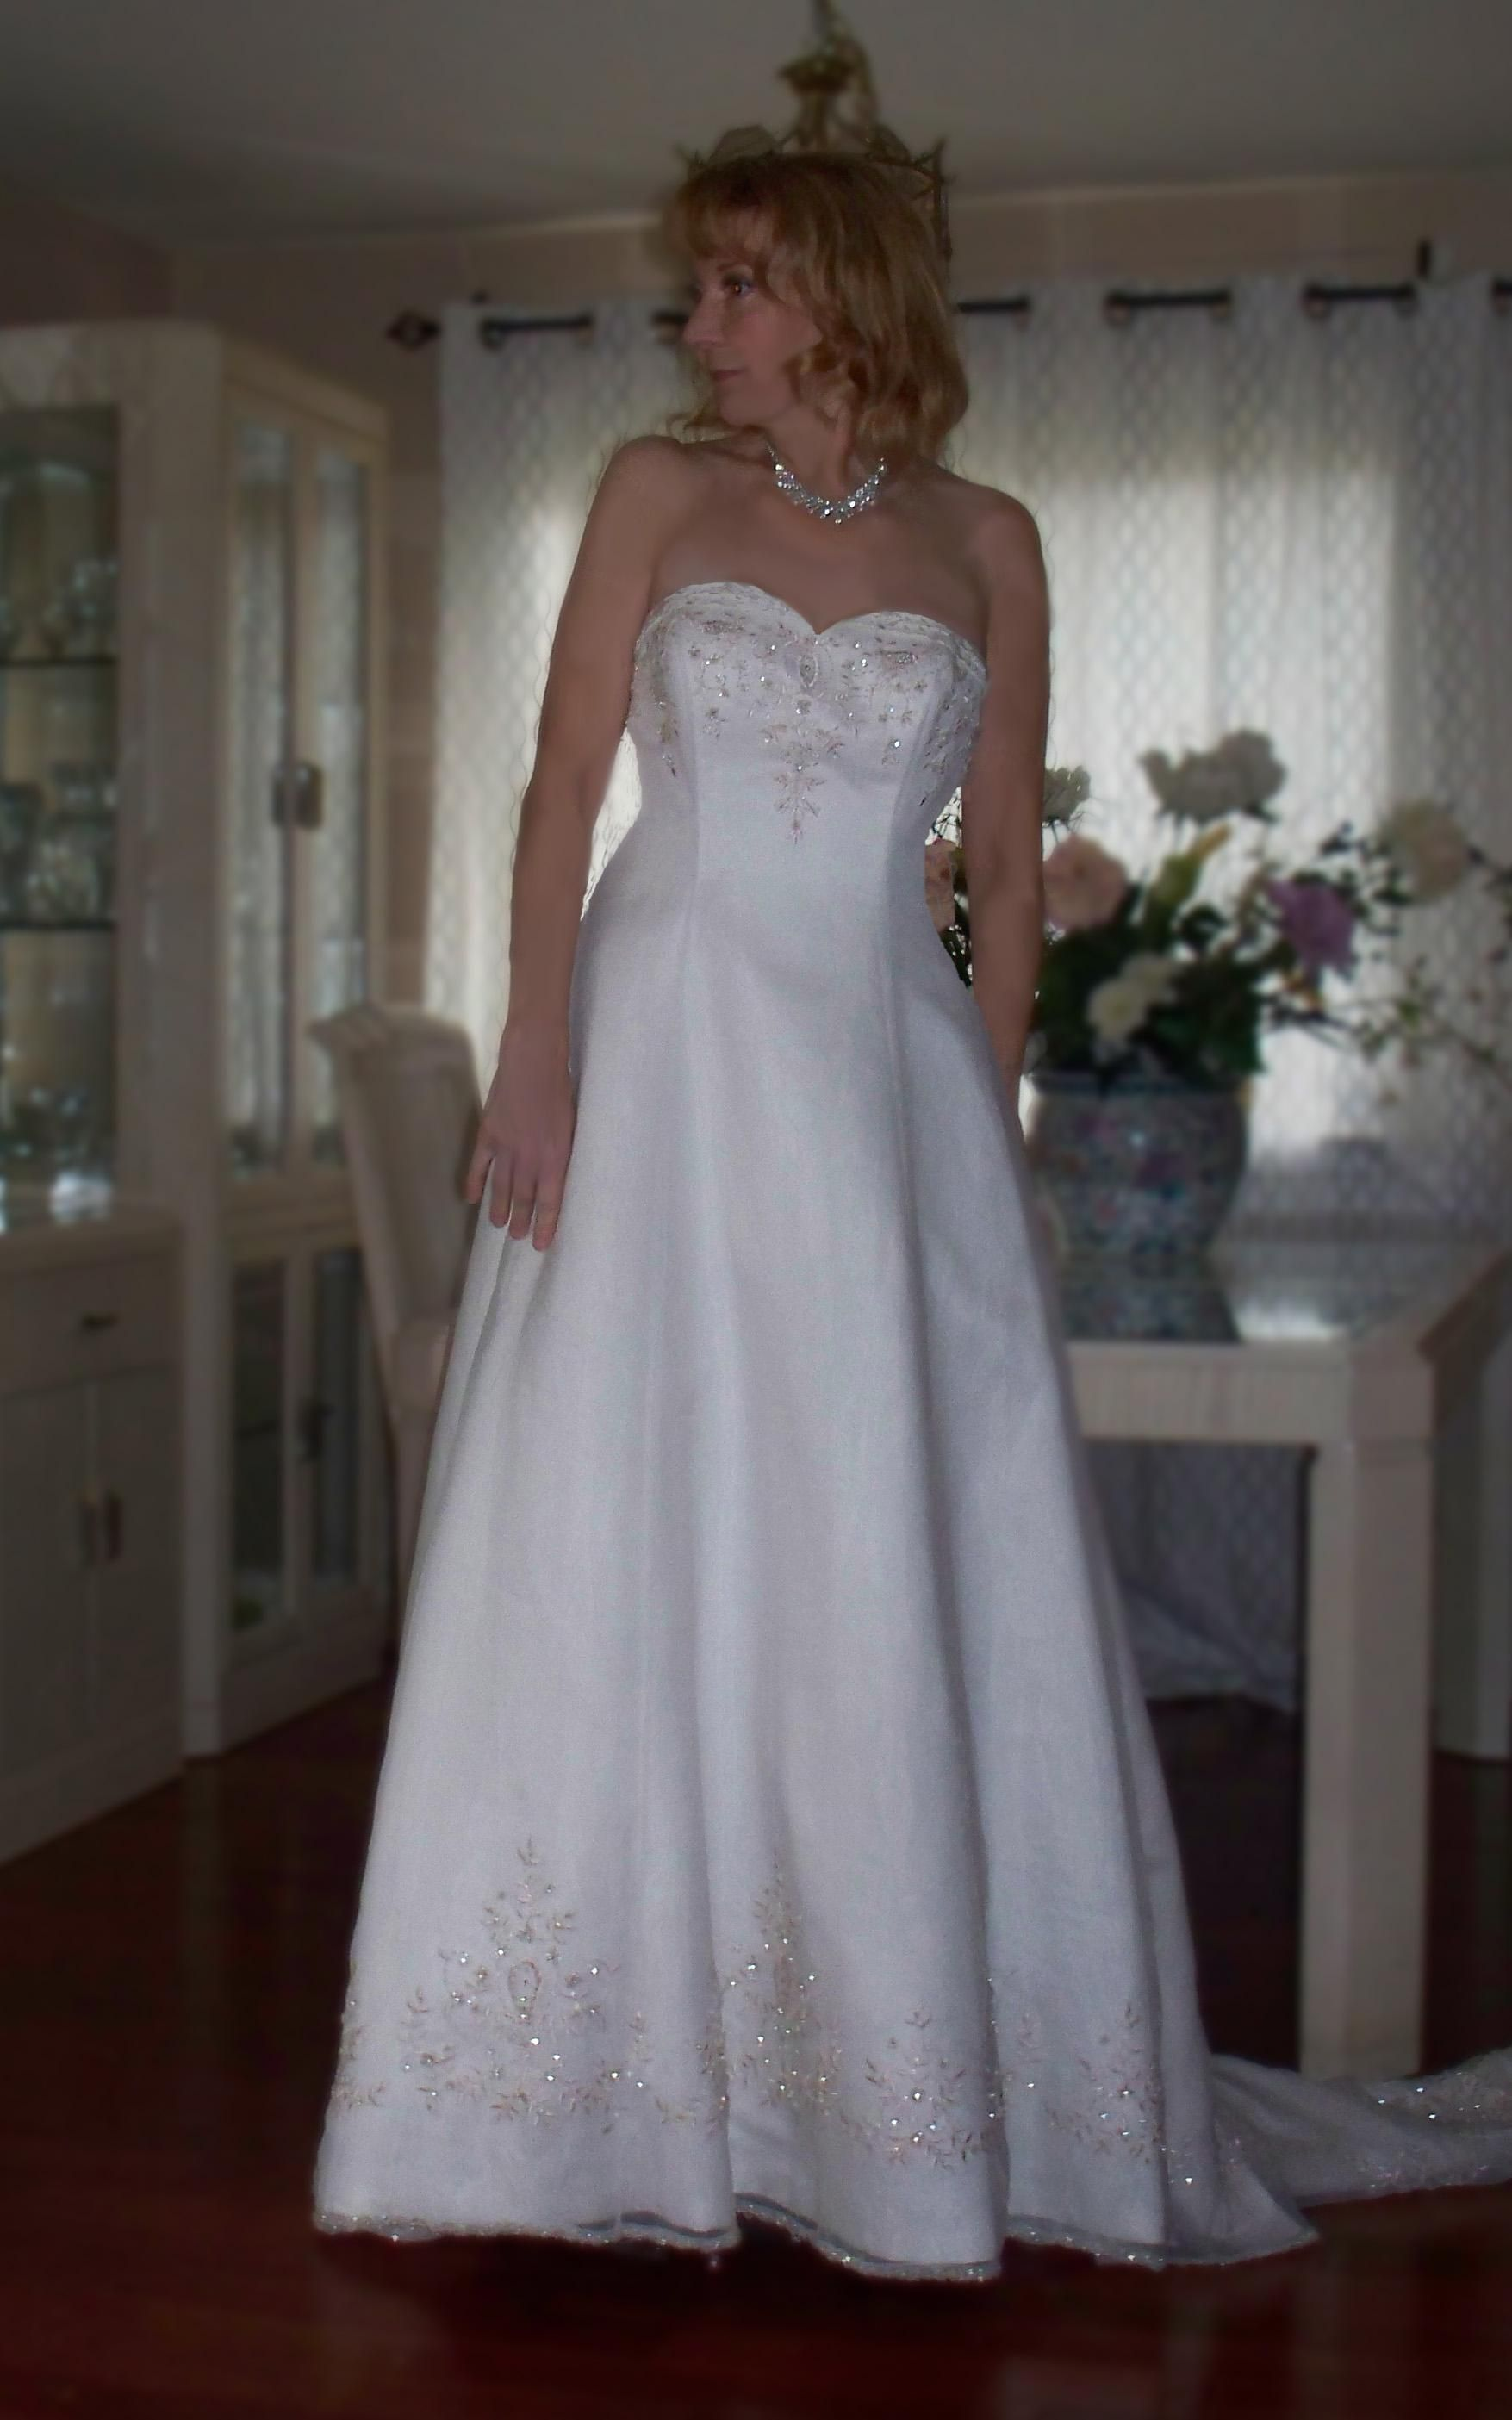 Recycled wedding dresses  Adorae Wedding Dress  Maggie sottero Wedding dress and Maggie